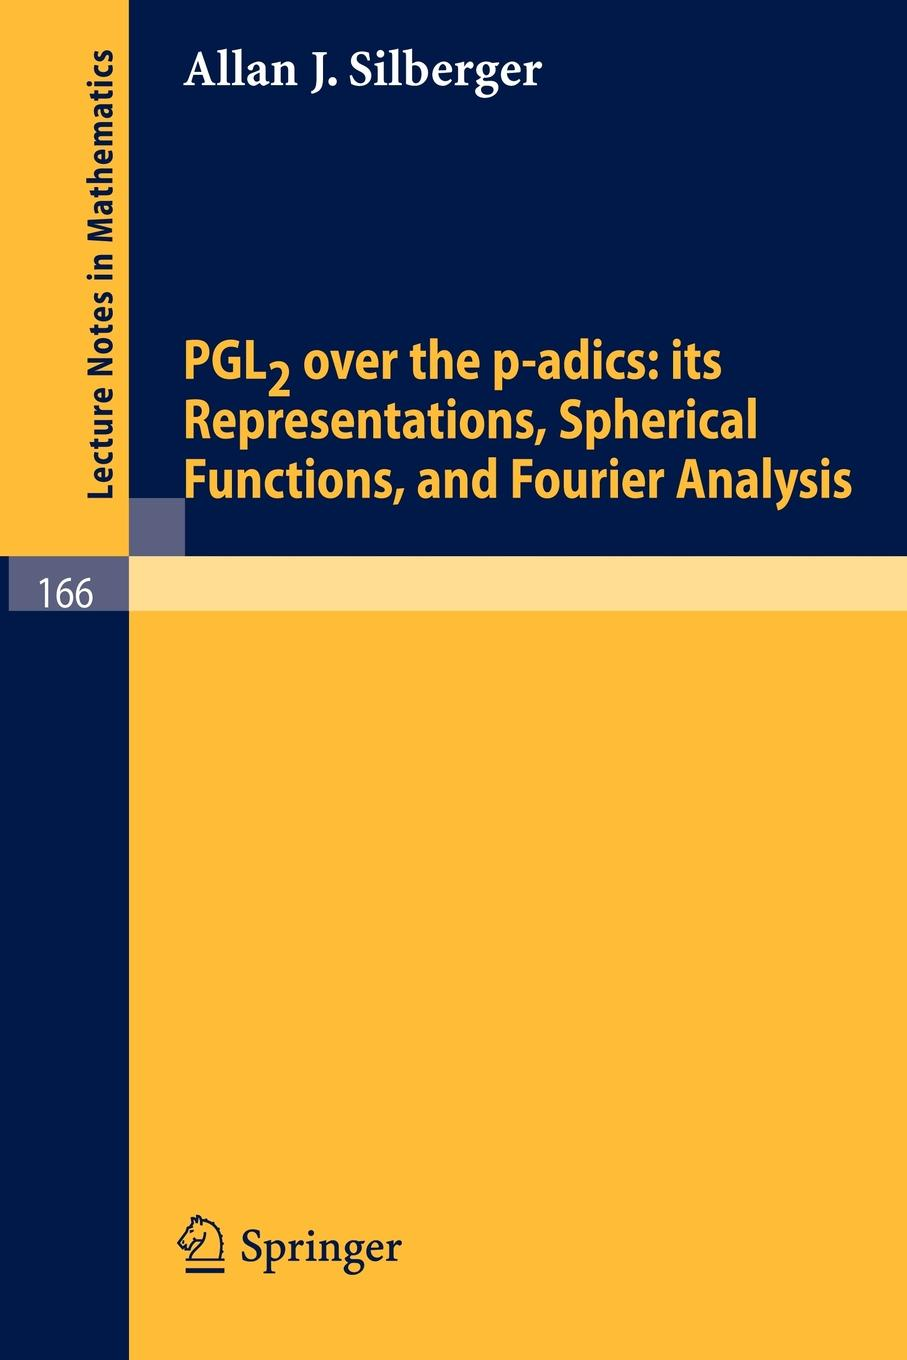 Allan J. Silberger Pgl2 Over the P-Adics. Its Representations, Spherical Functions, and Fourier Analysis